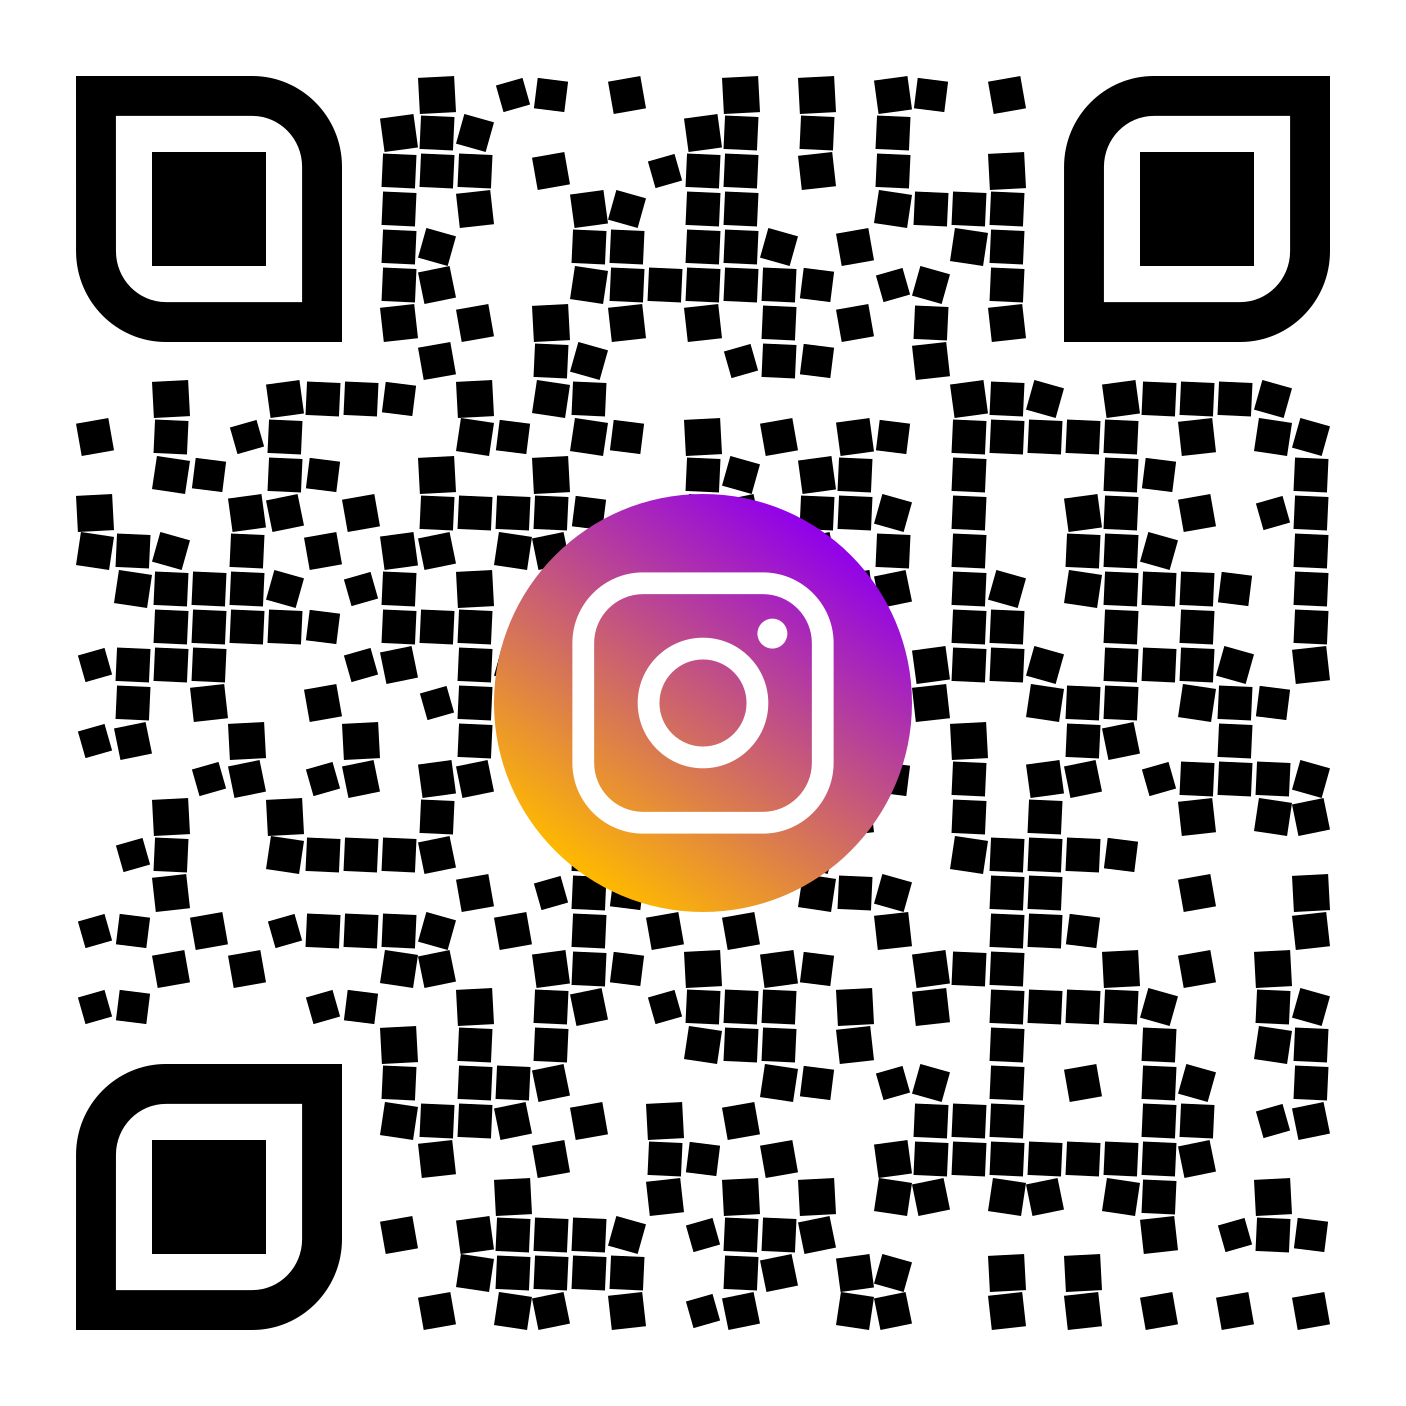 i will create qr code colour full with logo